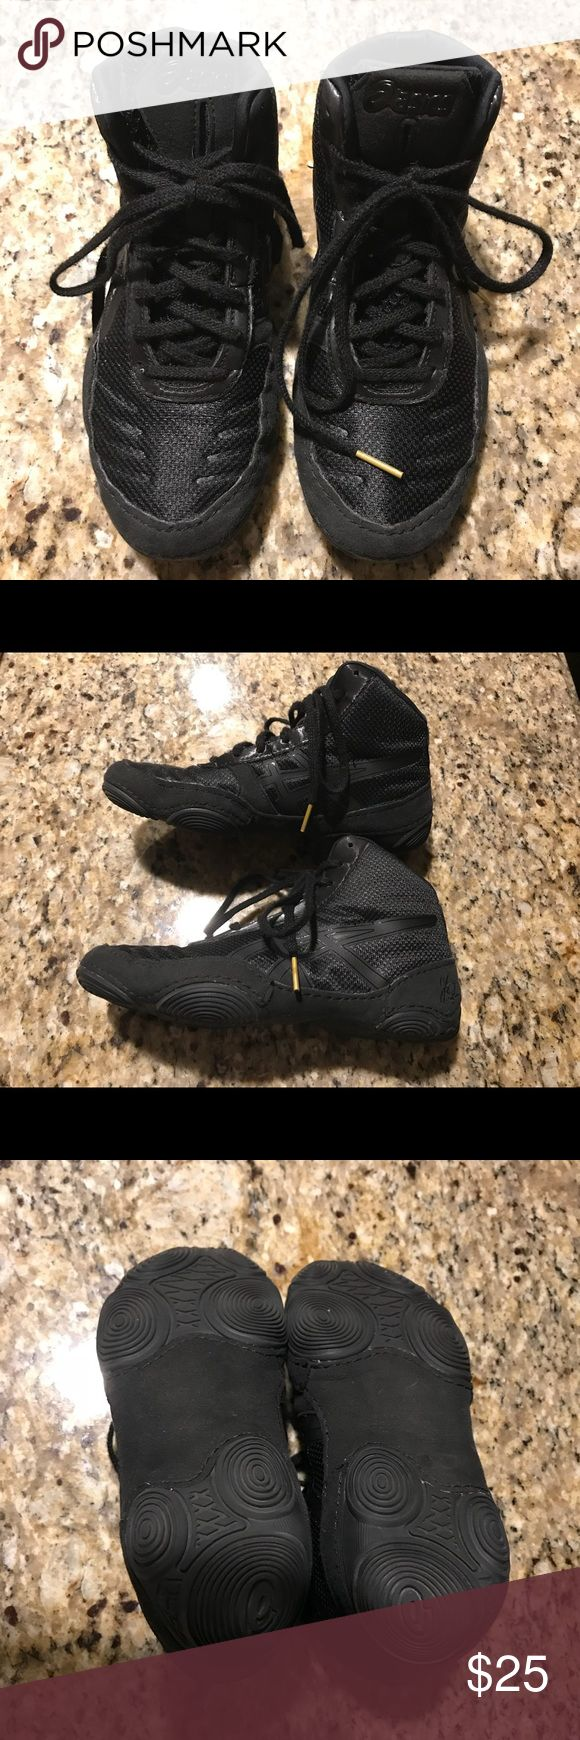 Youth Wrestling Shoes Only worn a few times, look brand new. My son grew out of them before he could really use. They were Top of the line shoes. Asics Shoes Sneakers